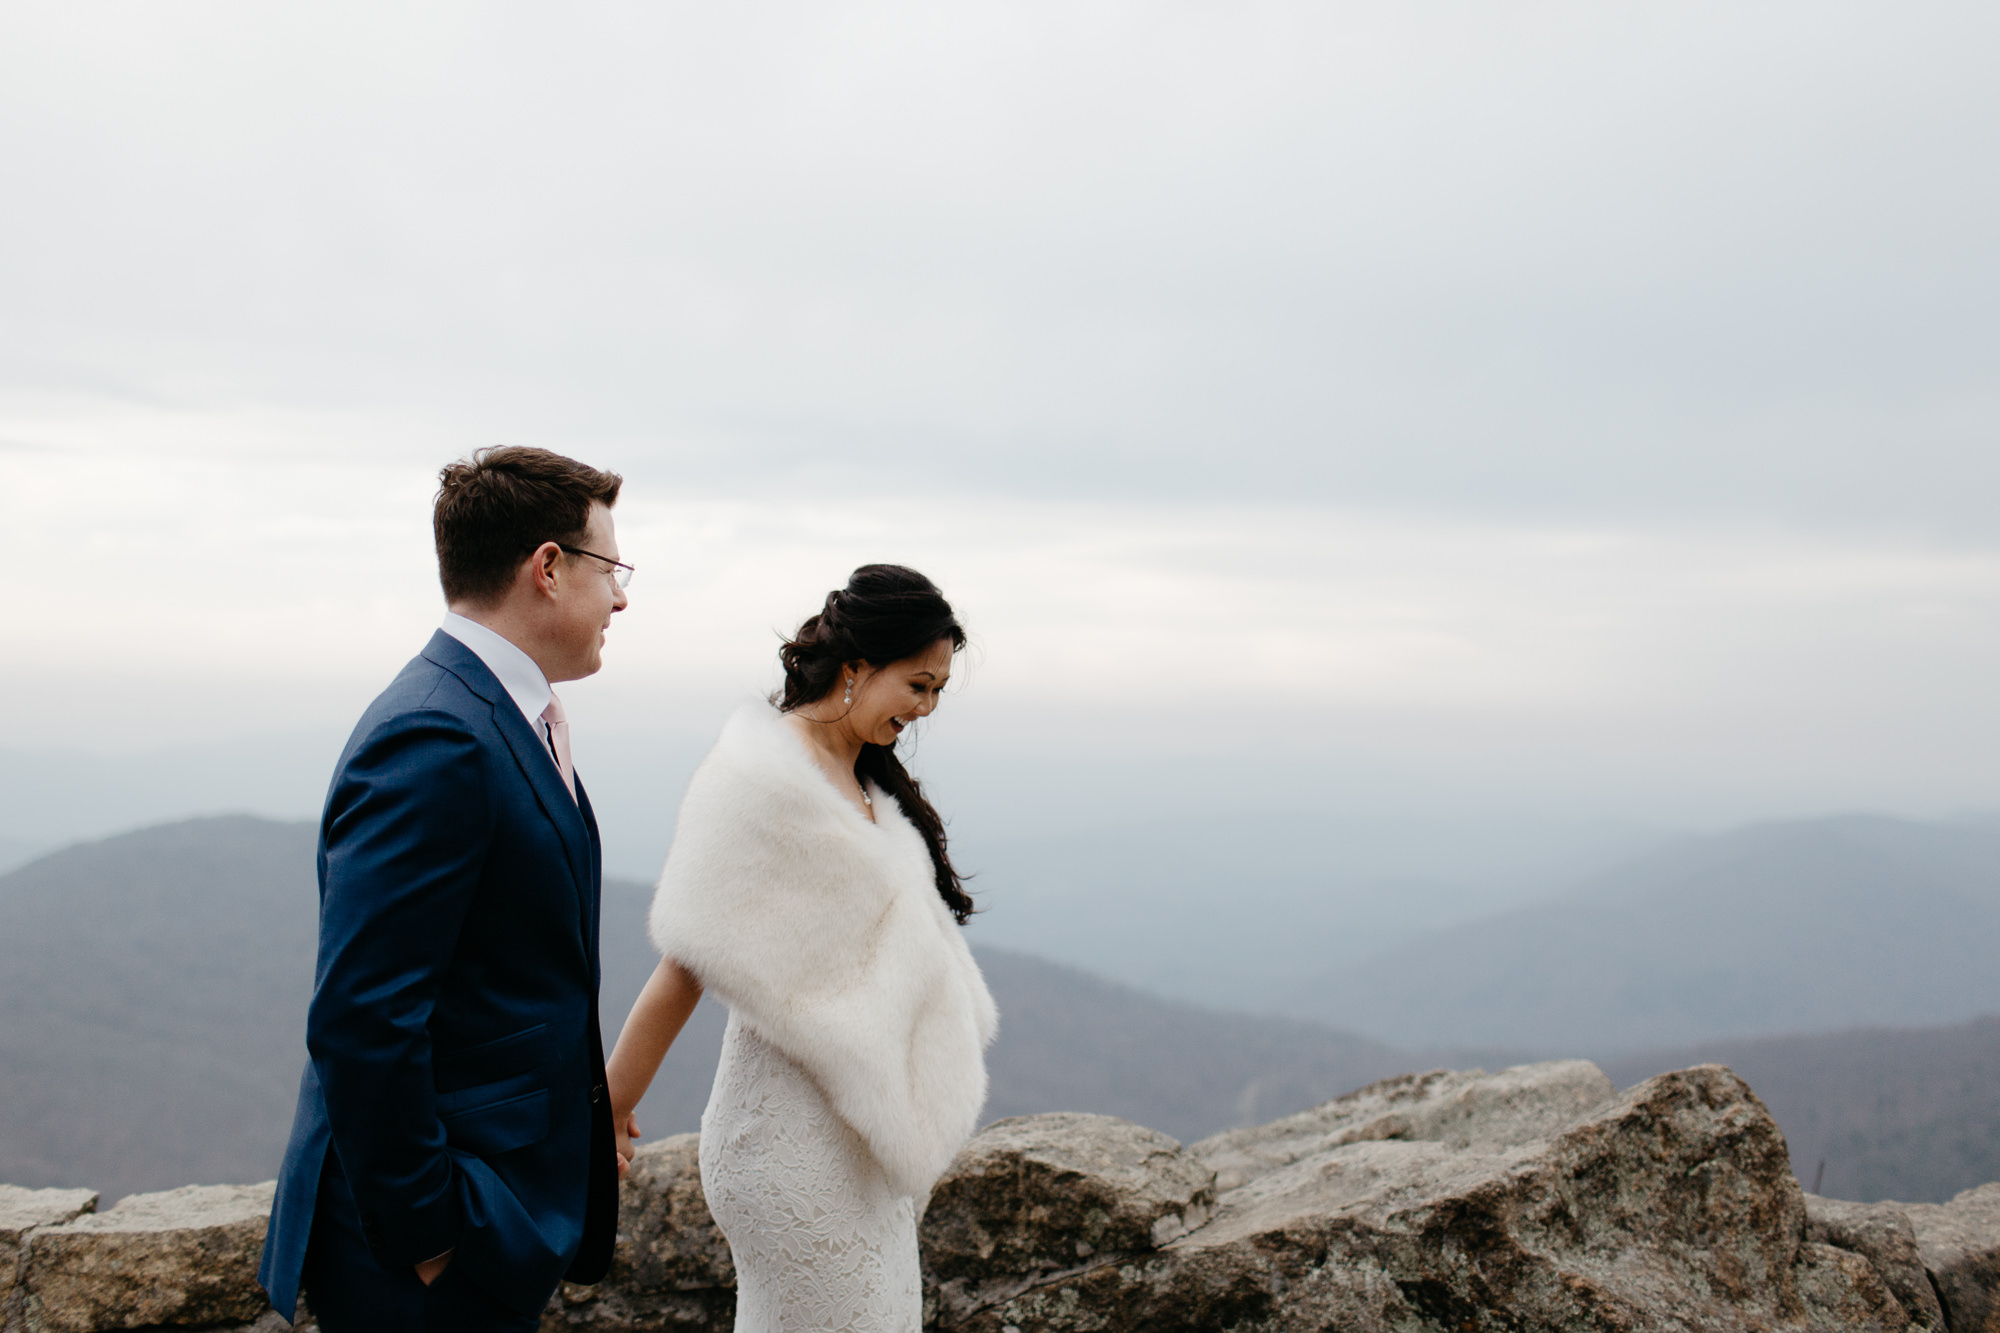 Peaks-of-Otter-Virginia-Of-Fate-and-Chaos-Elopement-Sharp-Top-38.jpg